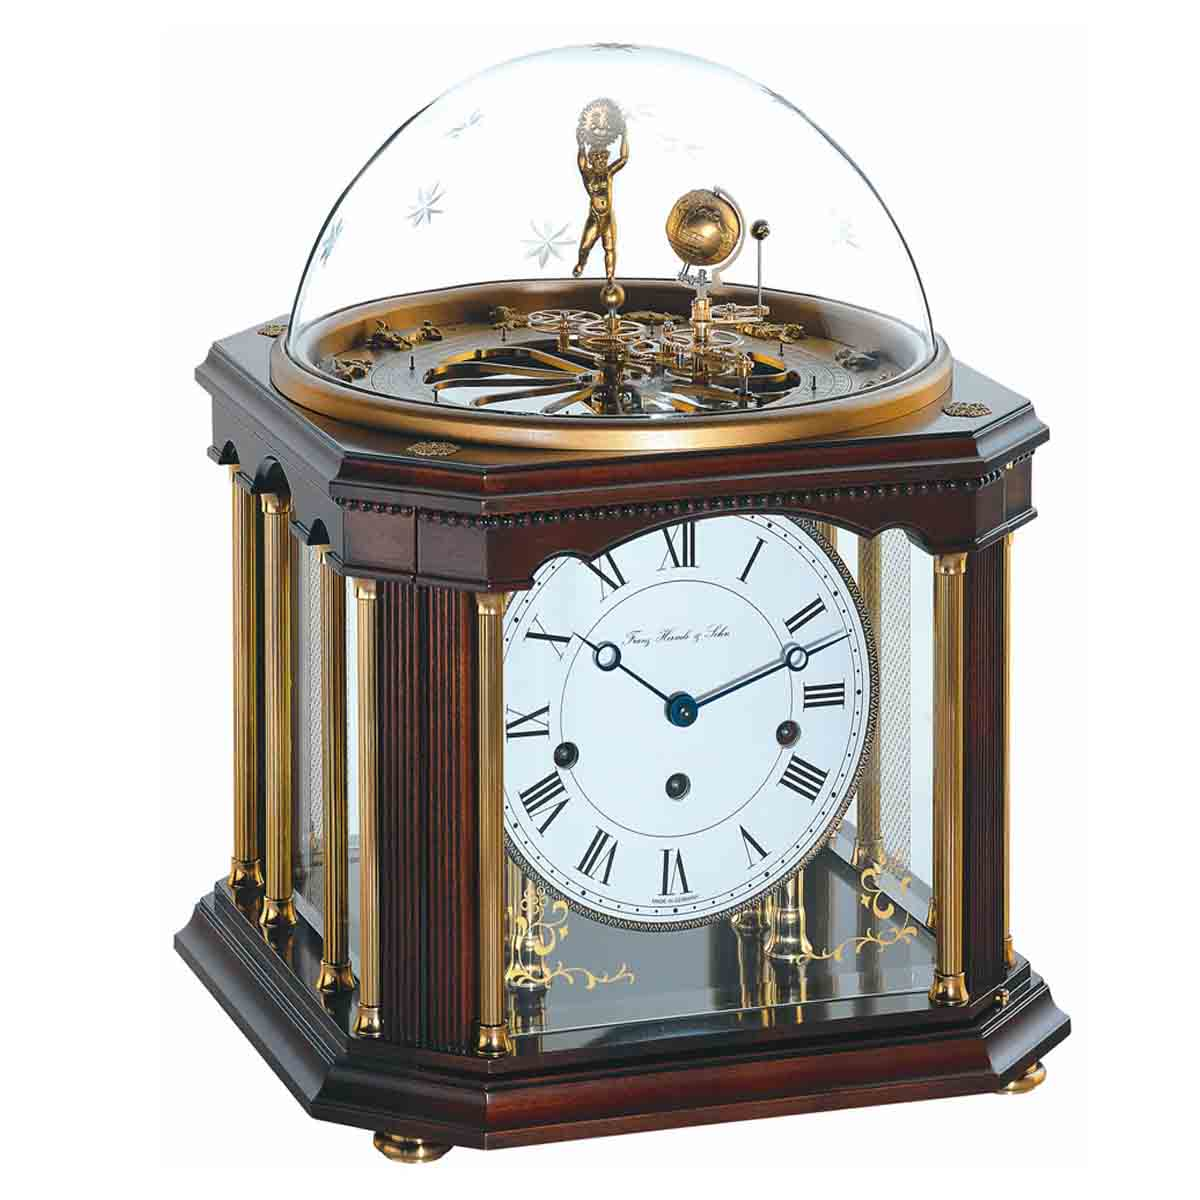 TELURIUM III 22948-Q10352 Astrolubium Table Clock